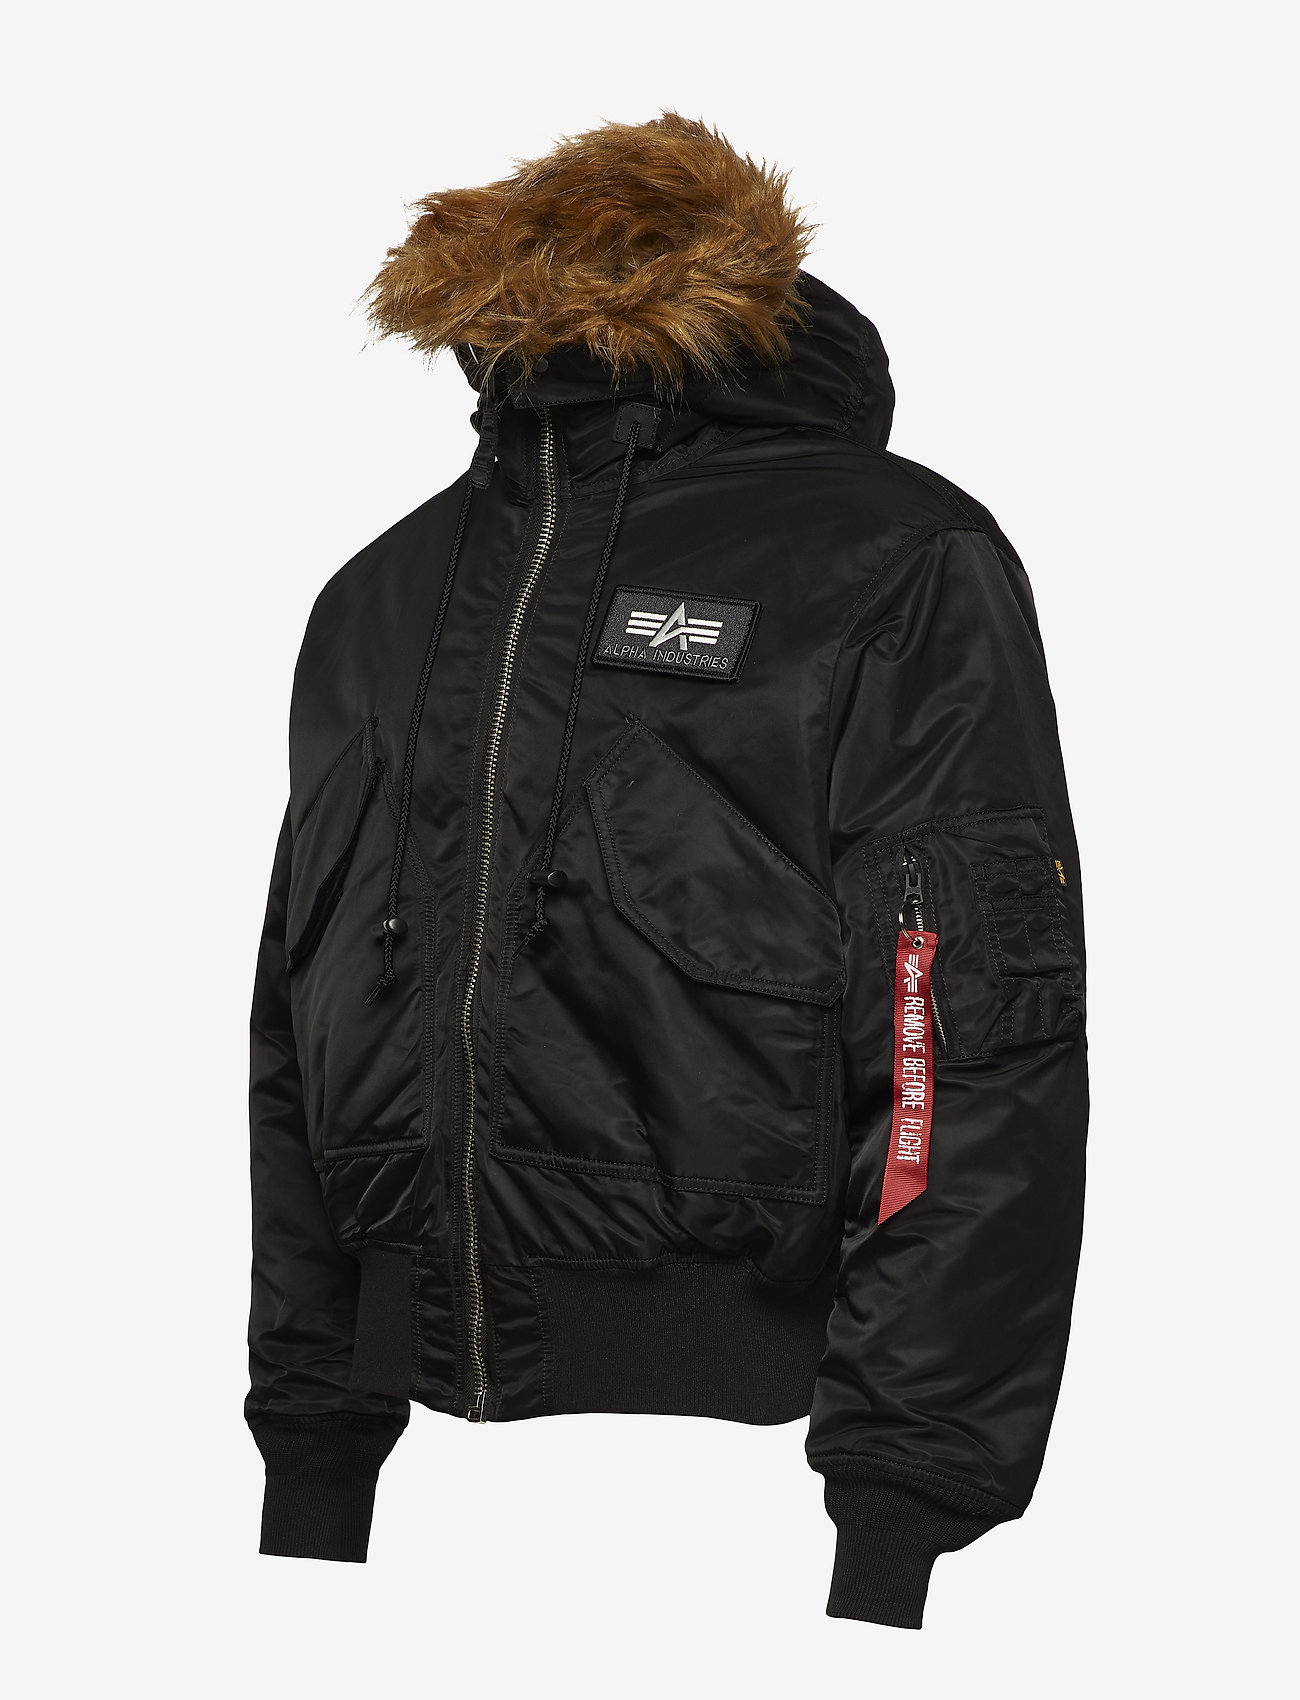 Alpha Industries 45P Hooded Custom - Jakker og frakker BLACK/REFLECTIVE - Menn Klær